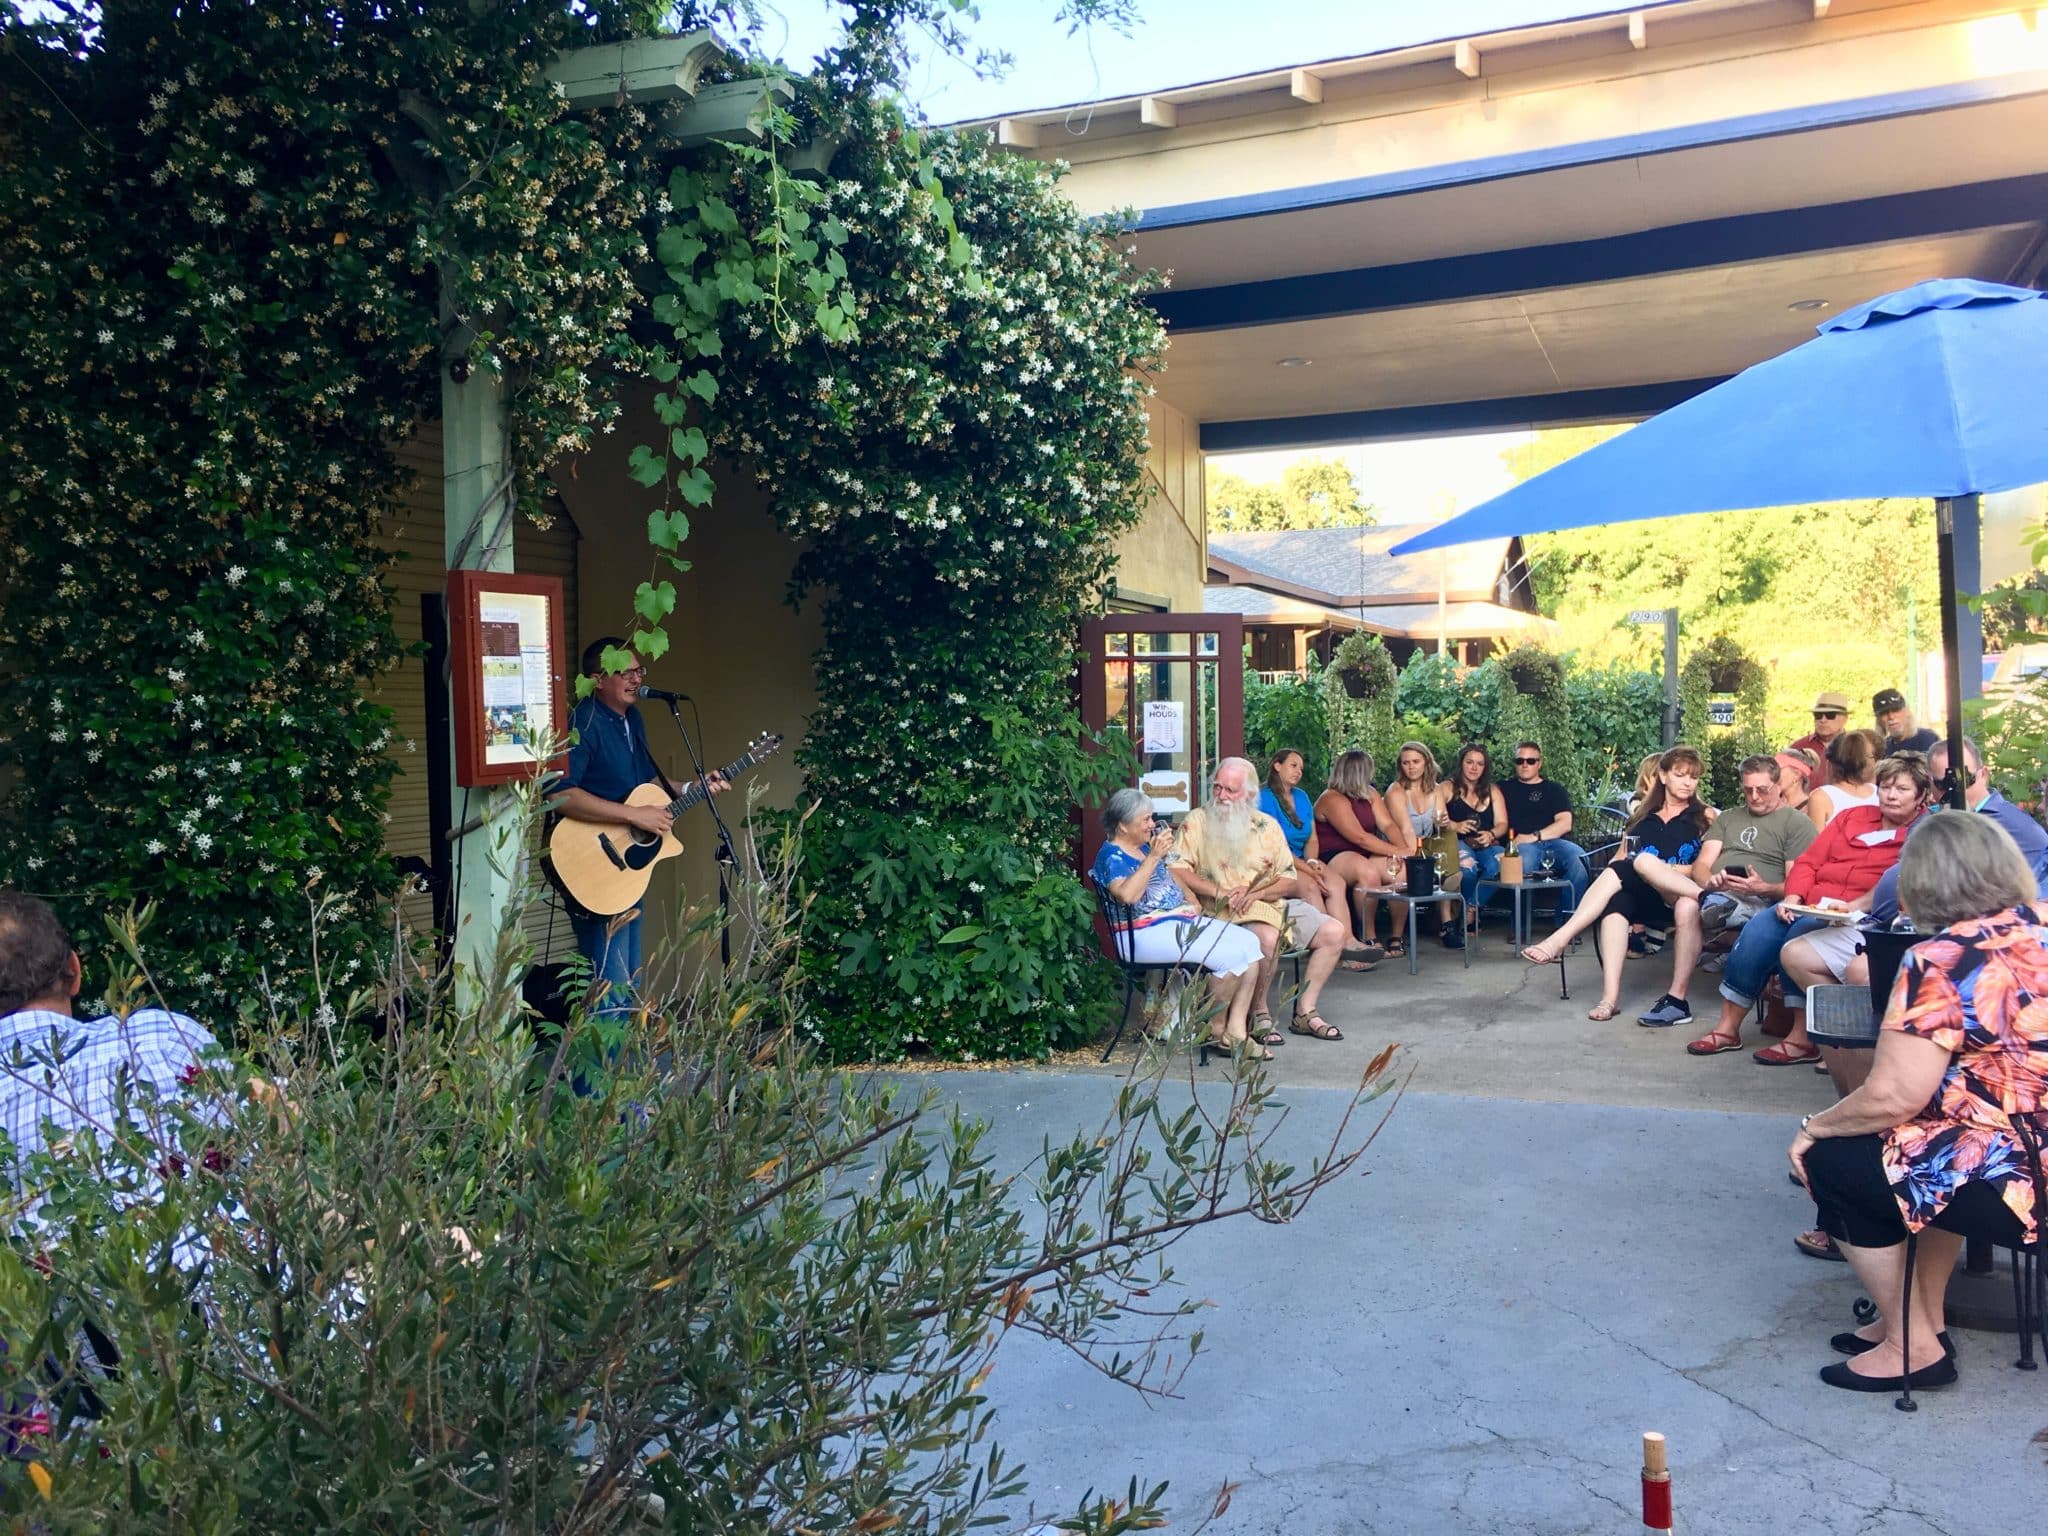 musician playing on an outdoor patio garden